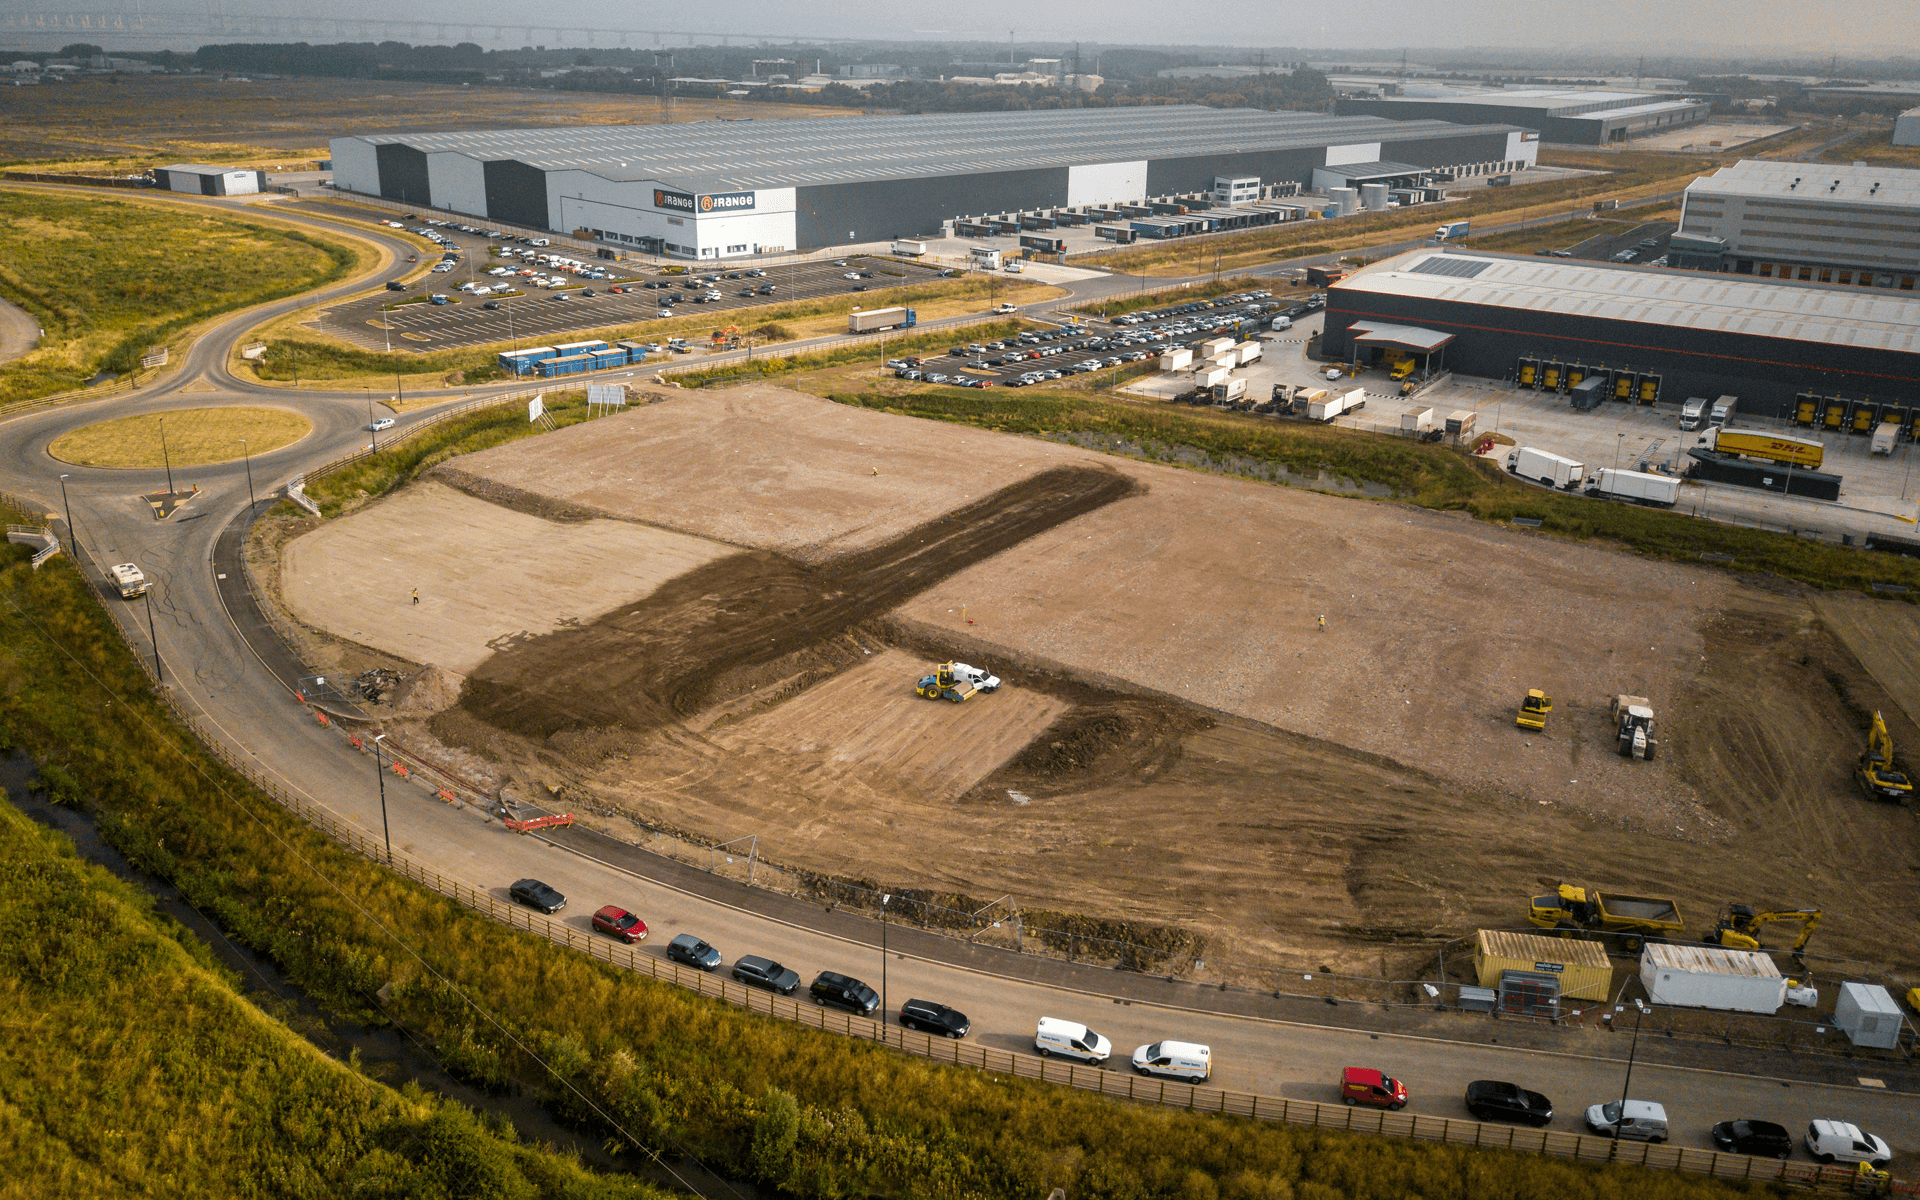 """""""Mavic Pro"""" aerial drone photo of the start of a """"VINCI"""" contruction site of several warehouses in Avonmouth, Bristol"""